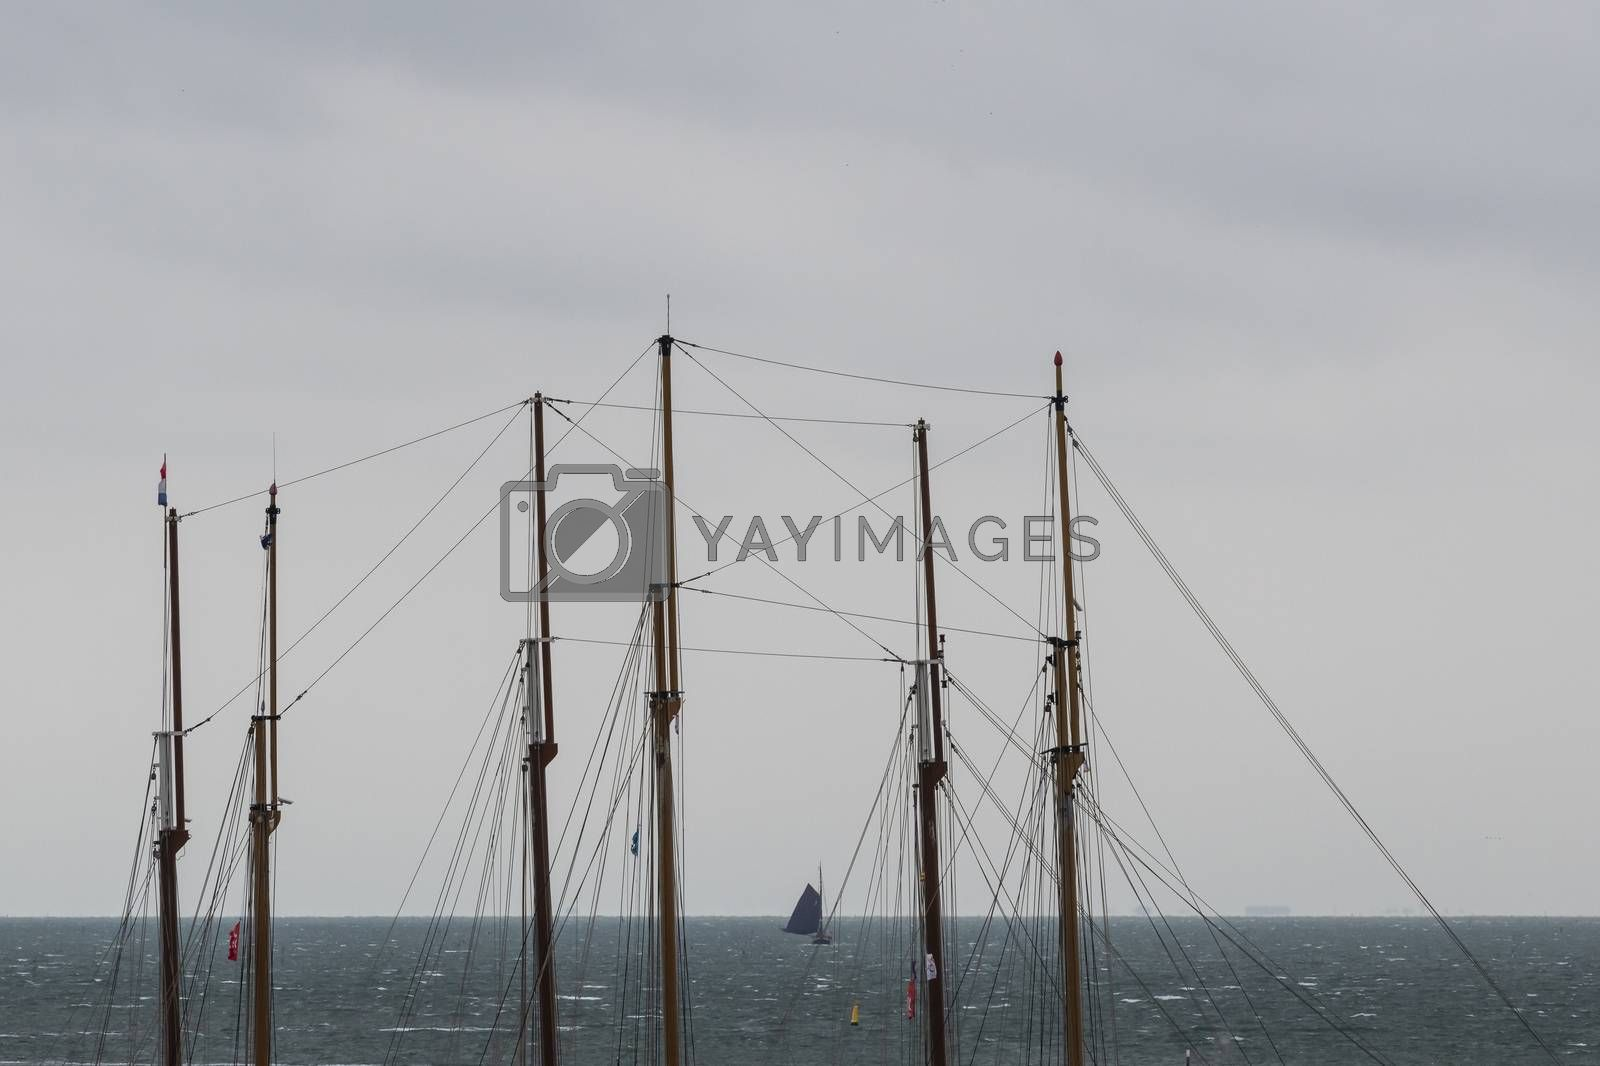 Royalty free image of Sailboat at sea seen through the masts of two three-masted sailb by Tofotografie